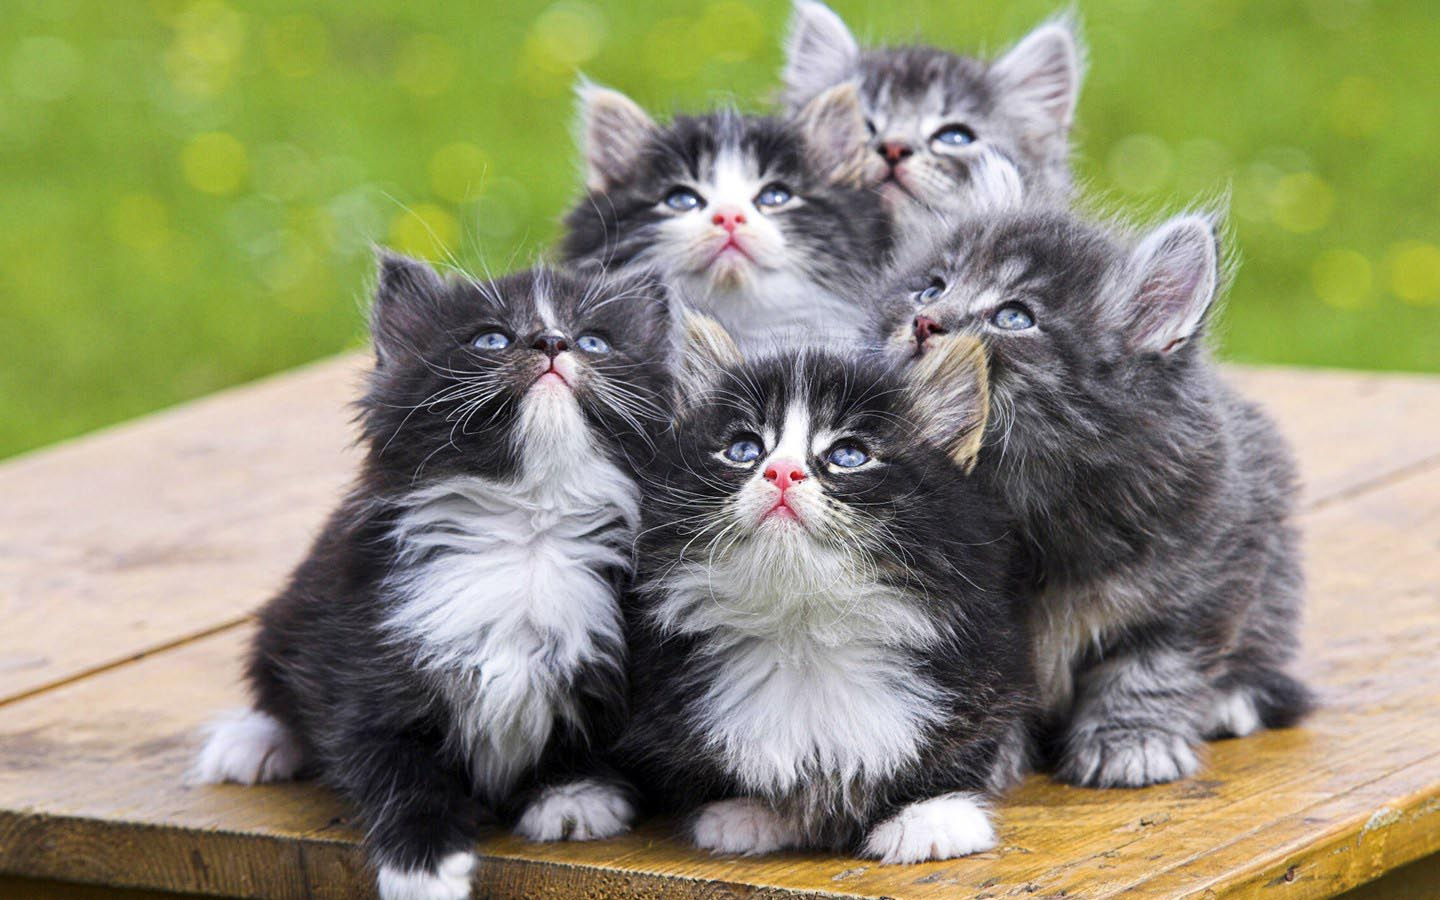 Pictures of Cute Kittes (2)